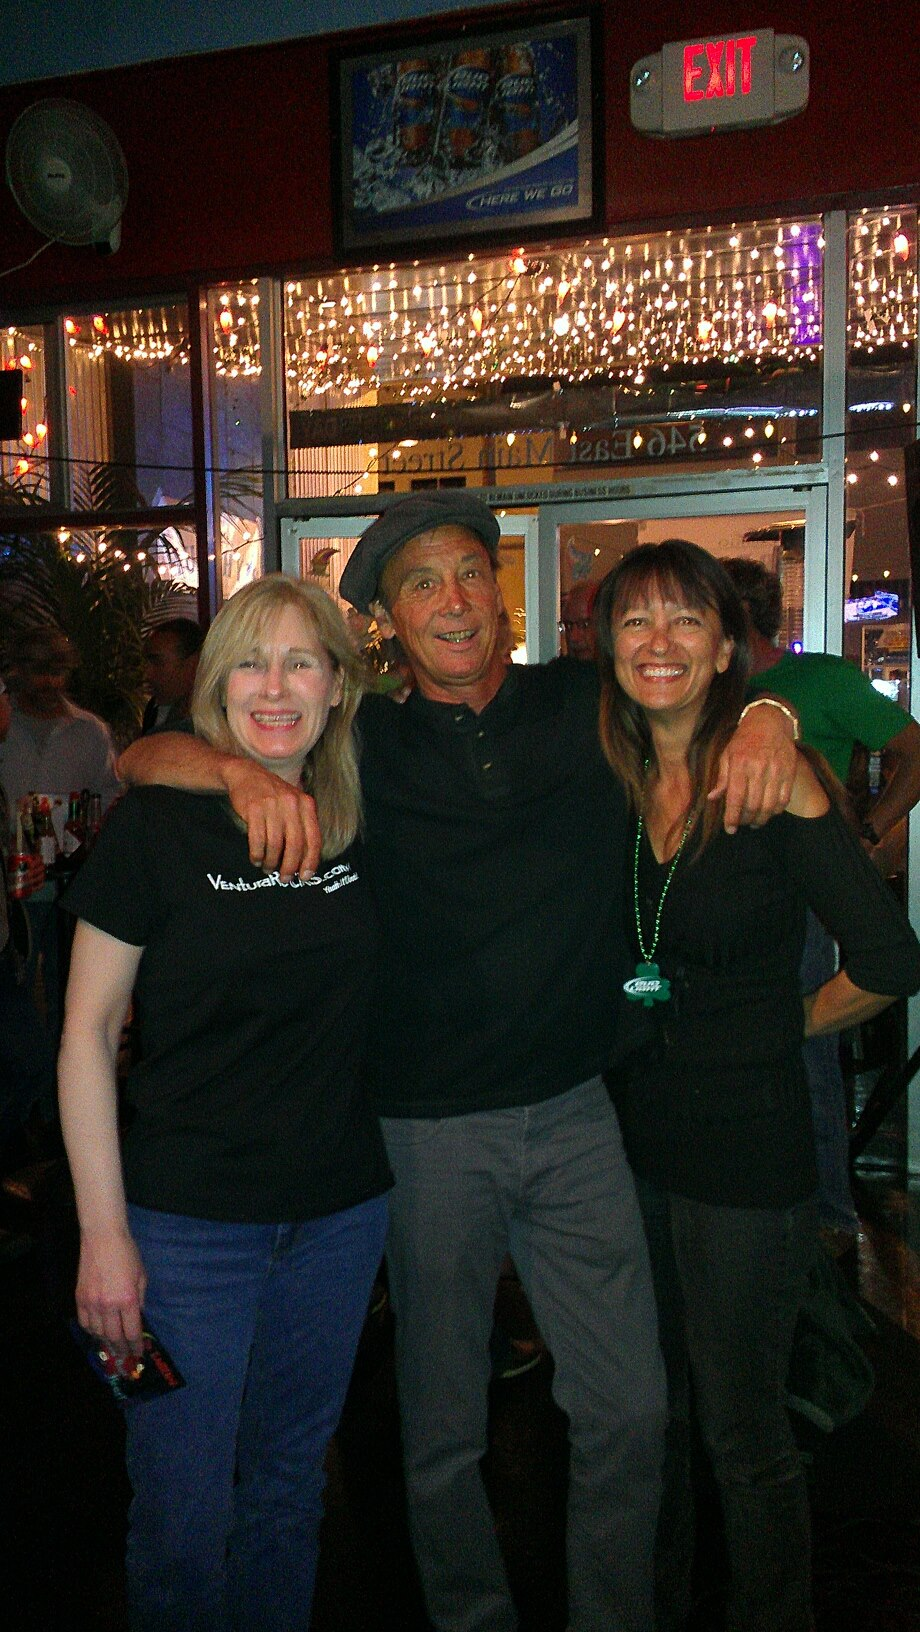 Eve and Pam of VenturaRocks.com with the Man, Spencer!